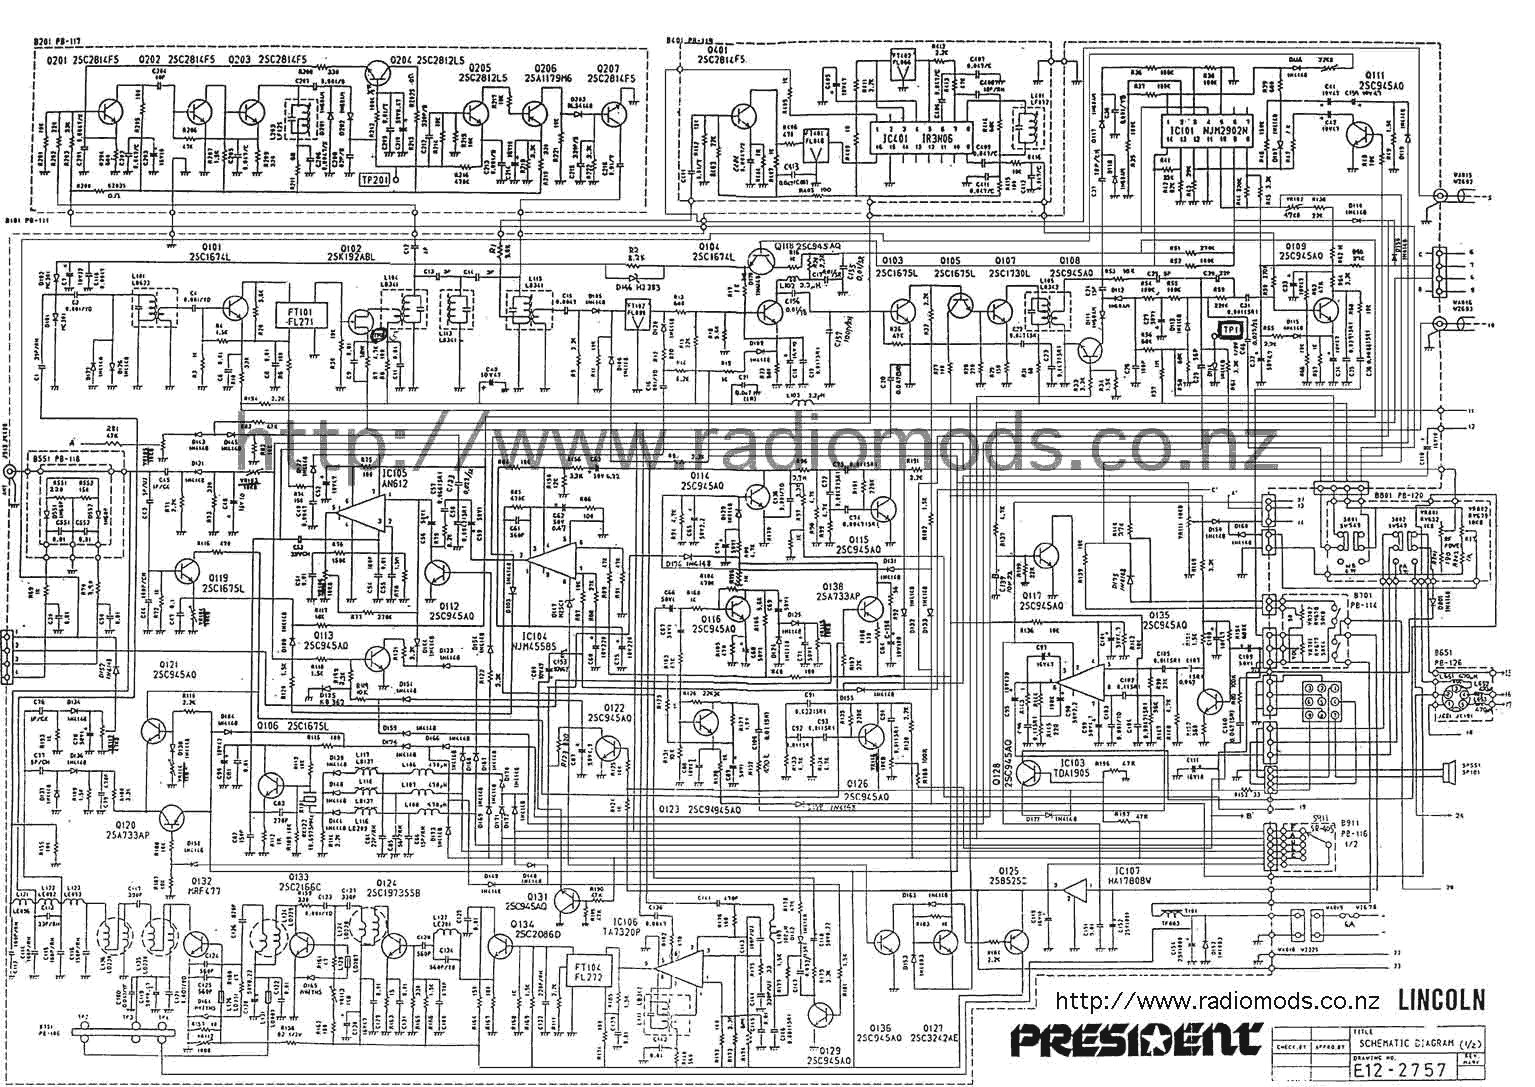 Gme Microphone Wiring Diagram 29 Images Uniden Mic Go To The President Lincoln Main Pcb Circuit